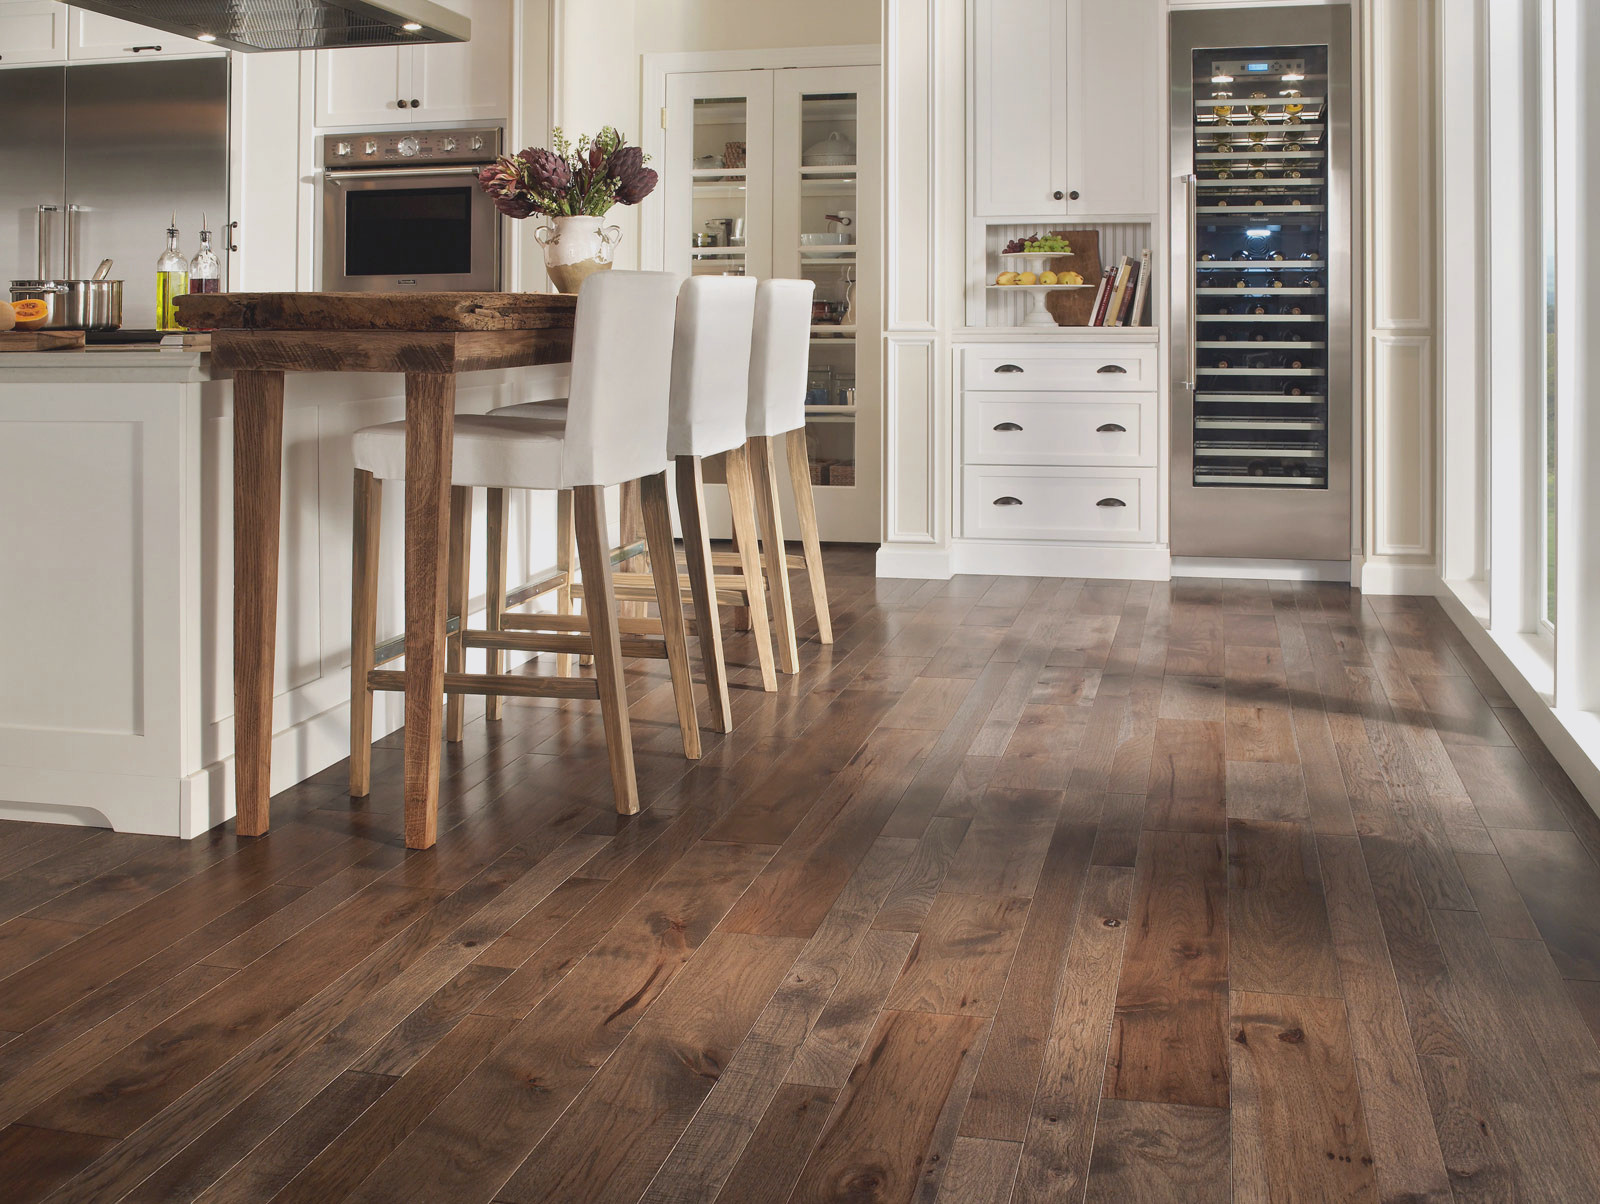 bruce hardwood floors lowes of cool lowes kitchen flooring best home design modern at interior throughout cool lowes kitchen flooring best home design modern at interior designs of cool lowes kitchen flooring